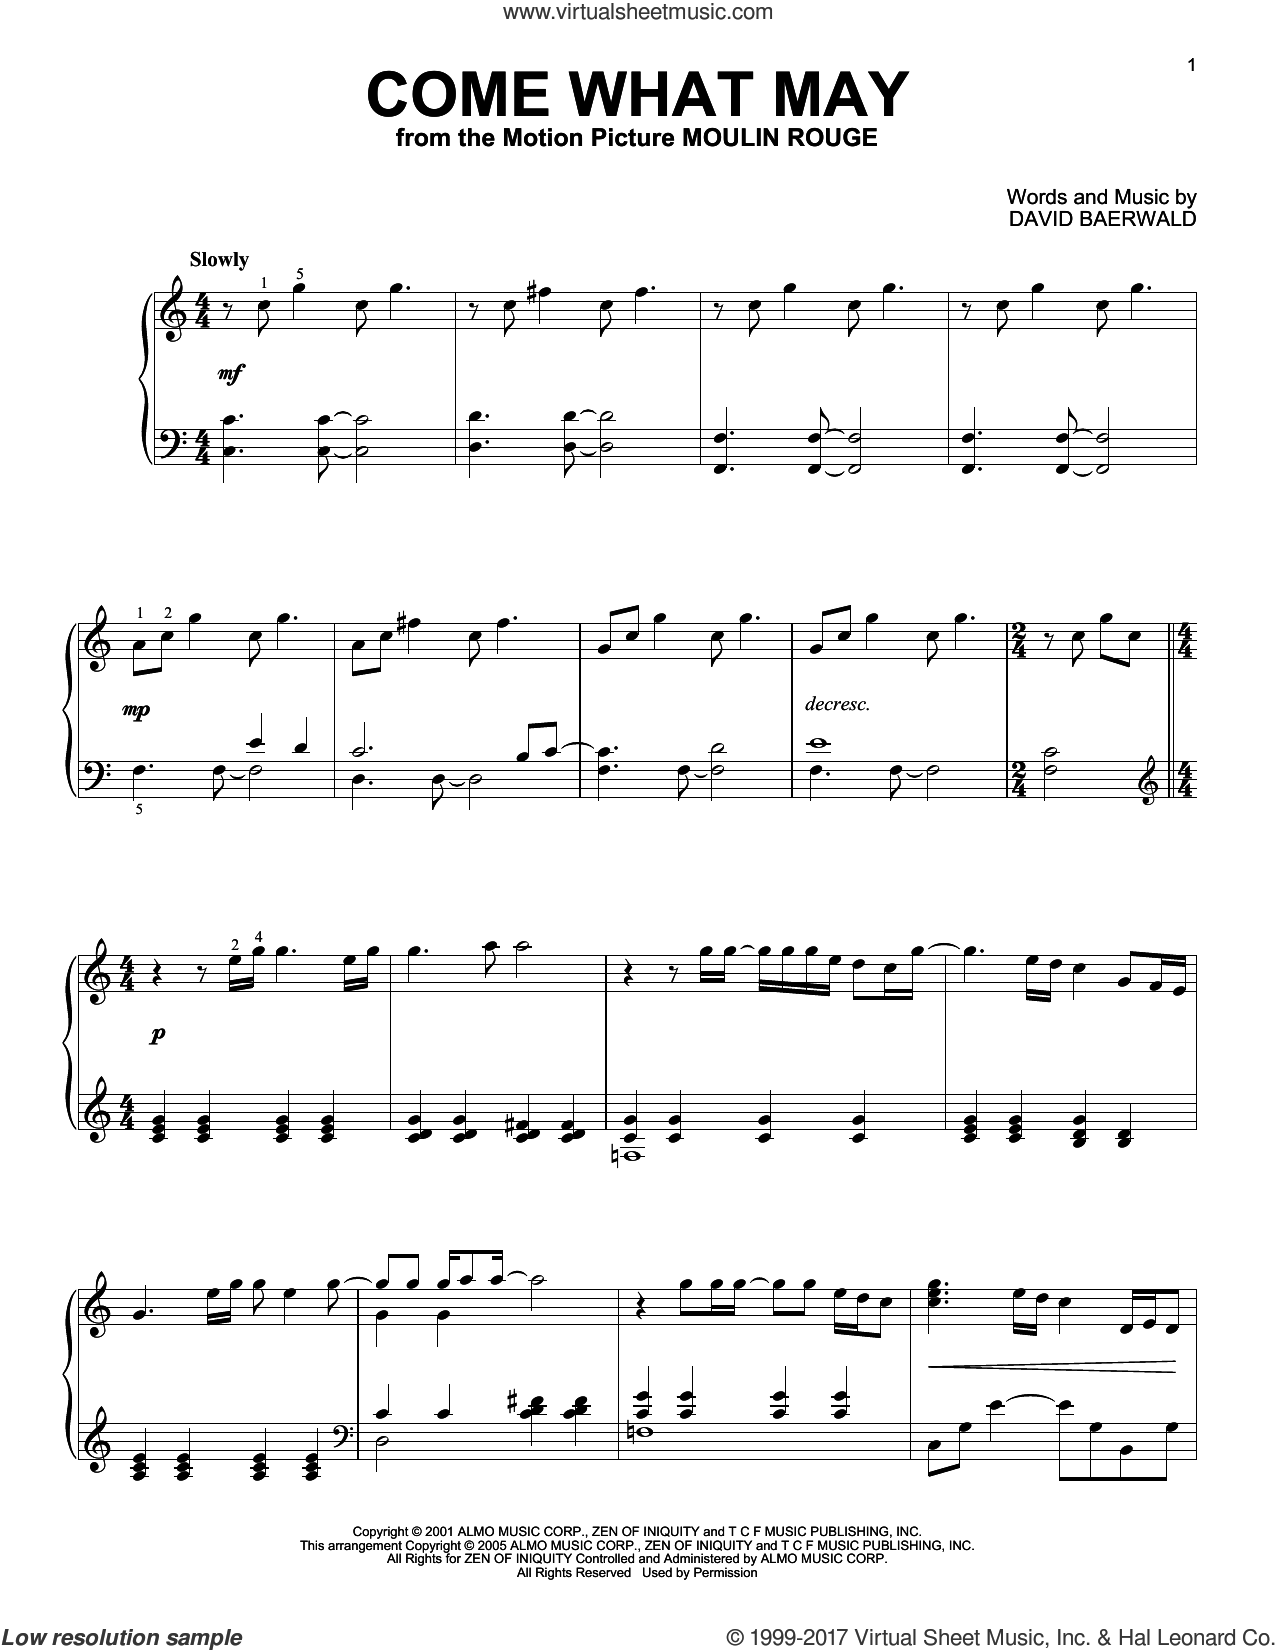 Come What May, (intermediate) sheet music for piano solo by Nicole Kidman and Ewan McGregor, Ewan McGregor, Moulin Rouge (Movie), Nicole Kidman and David Baerwald, intermediate skill level